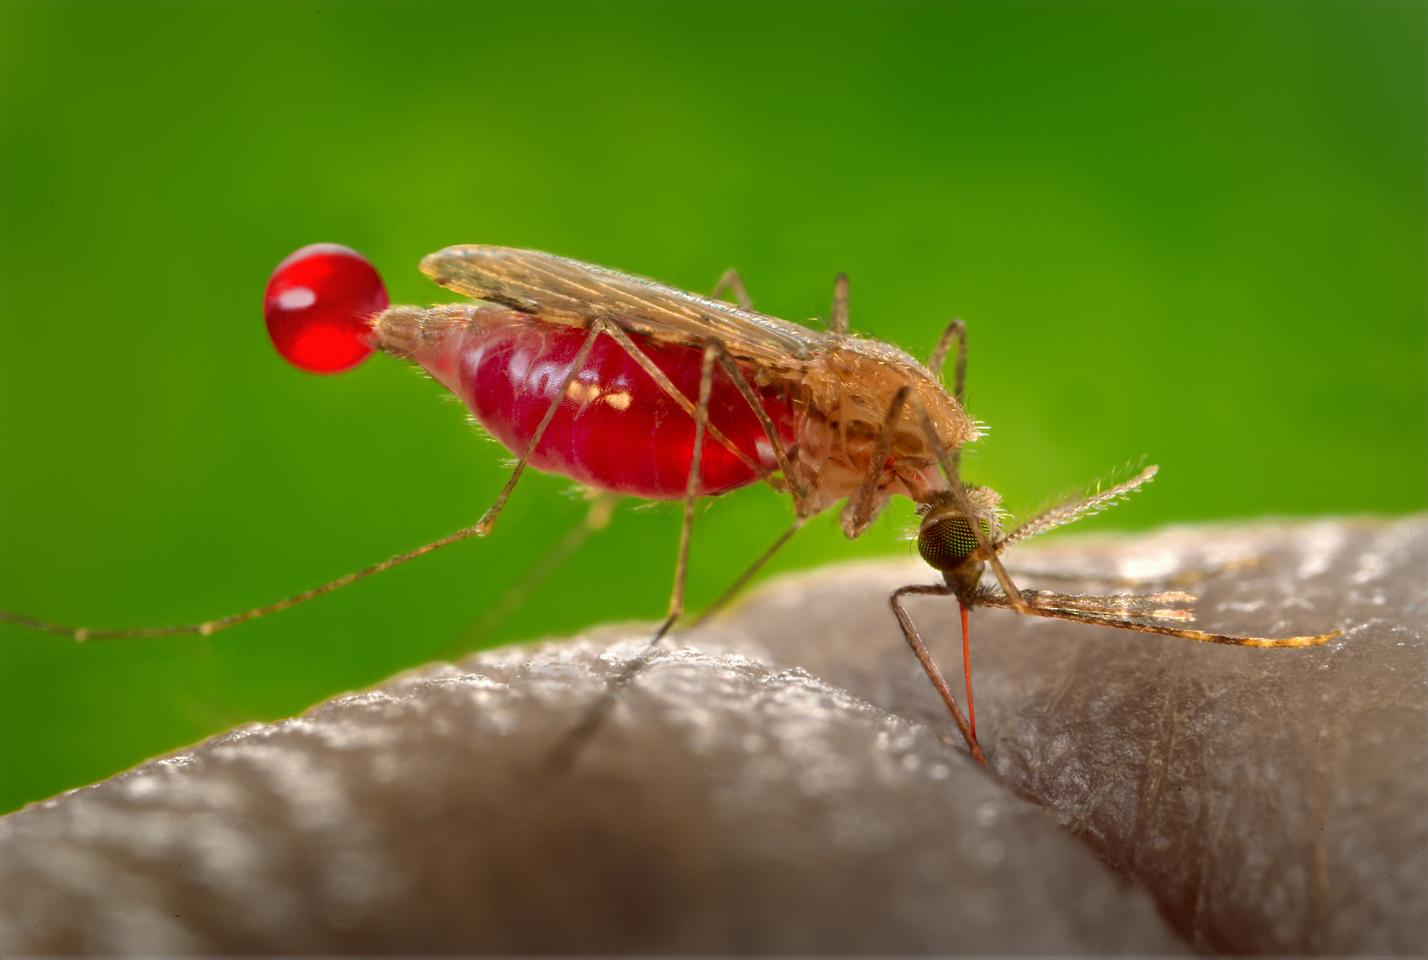 A female Anopheles gambiae mosquito, packin' a blood meal and two X chromosomes